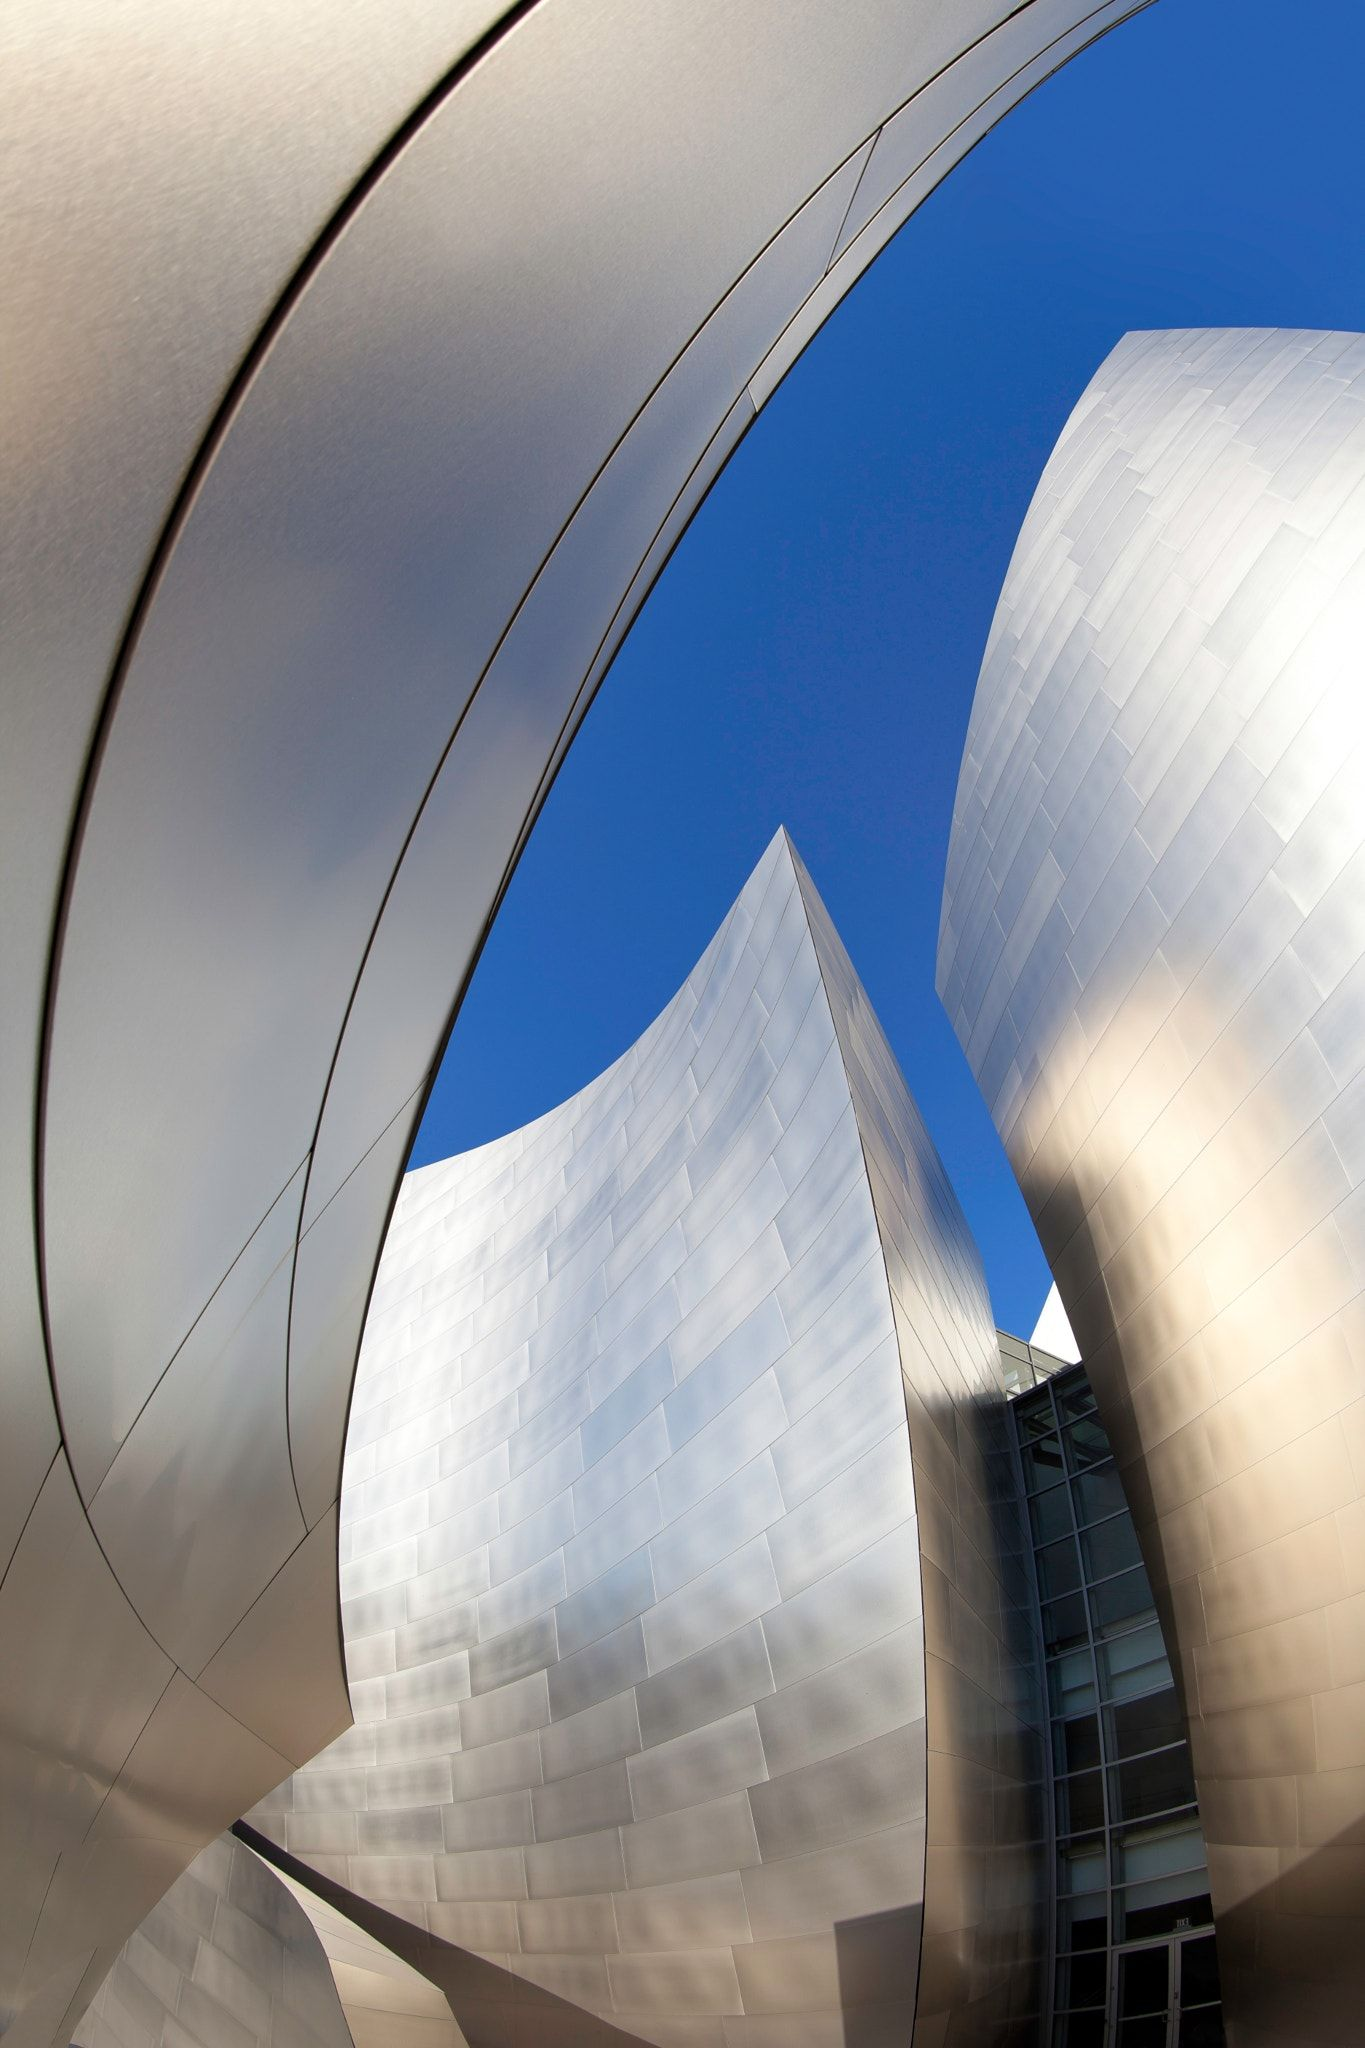 WDCH Walt Disney Concert Hall in Los Angeles, designed